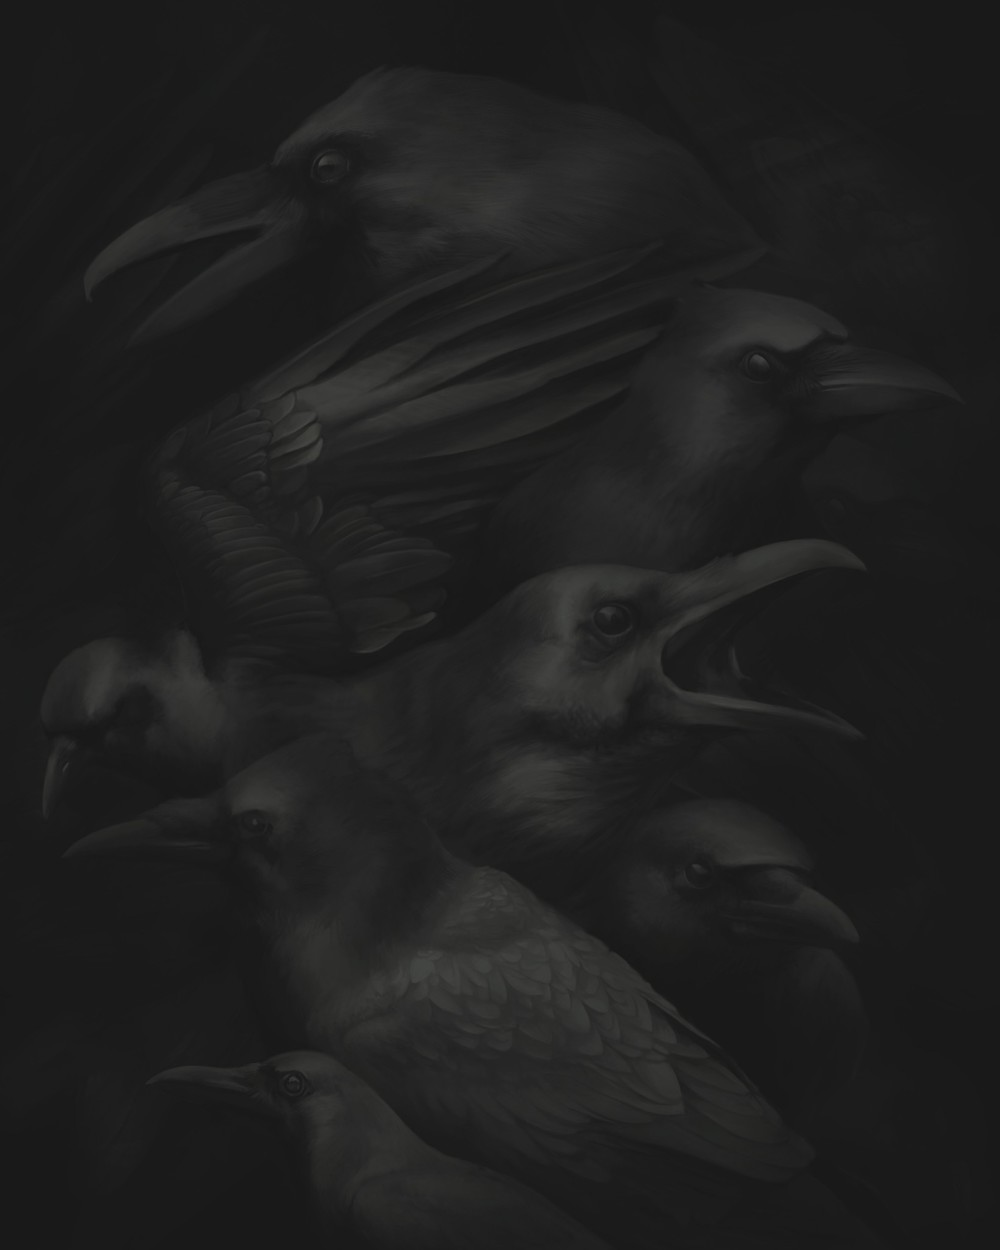 Birds I, Digital Painting - Lenticular Print, 2012